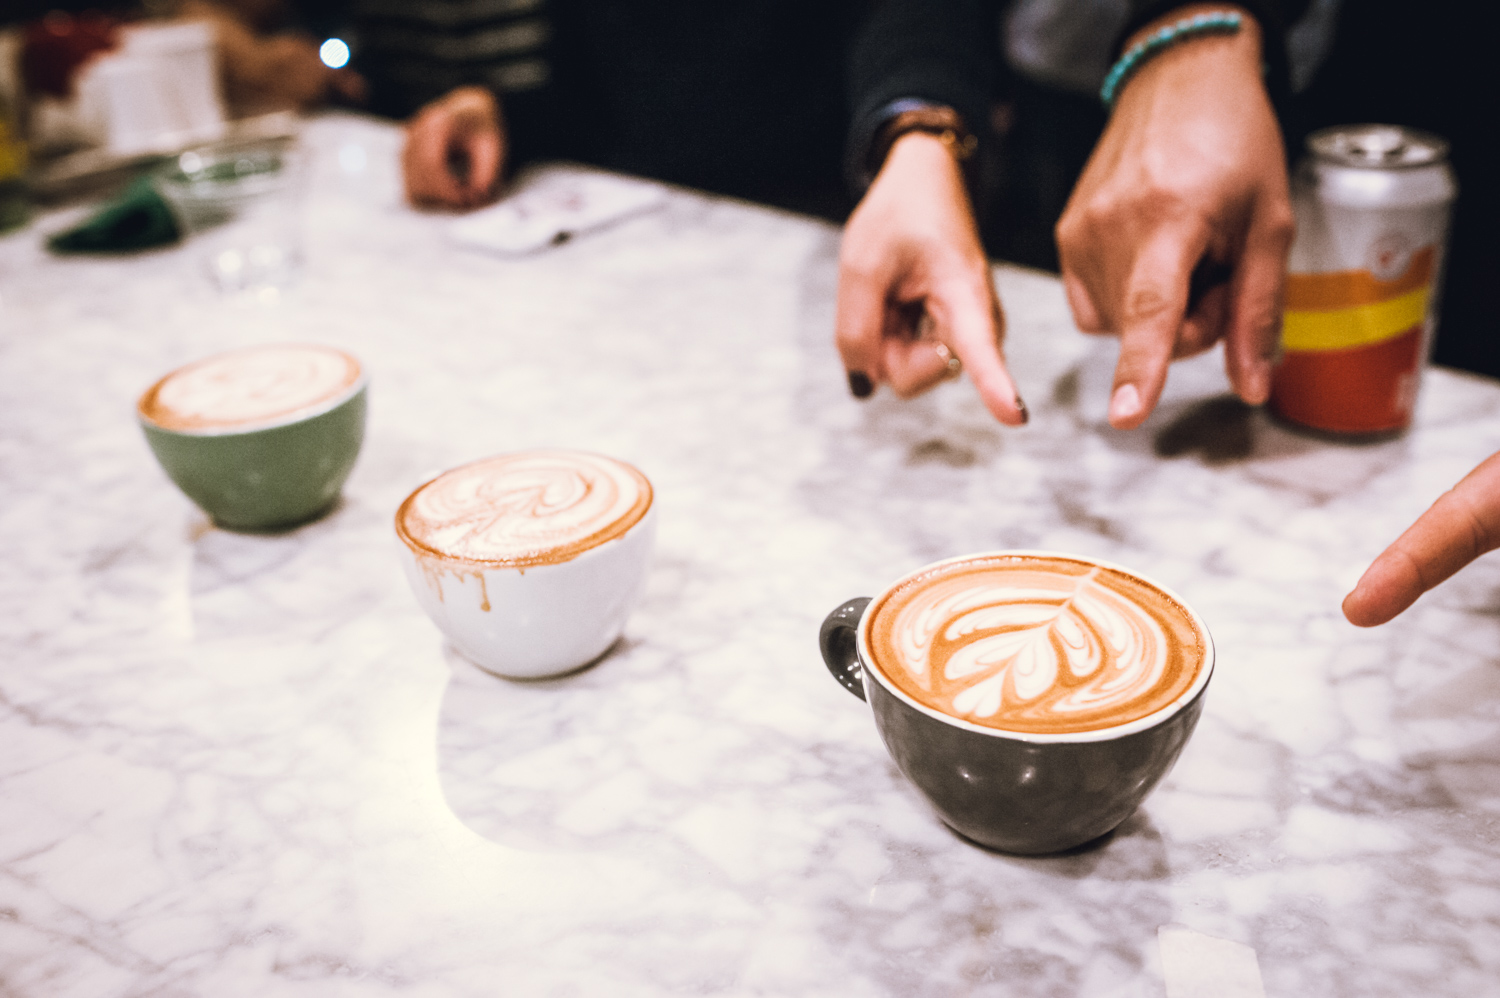 On the count of three, the judges point at their favorite pour